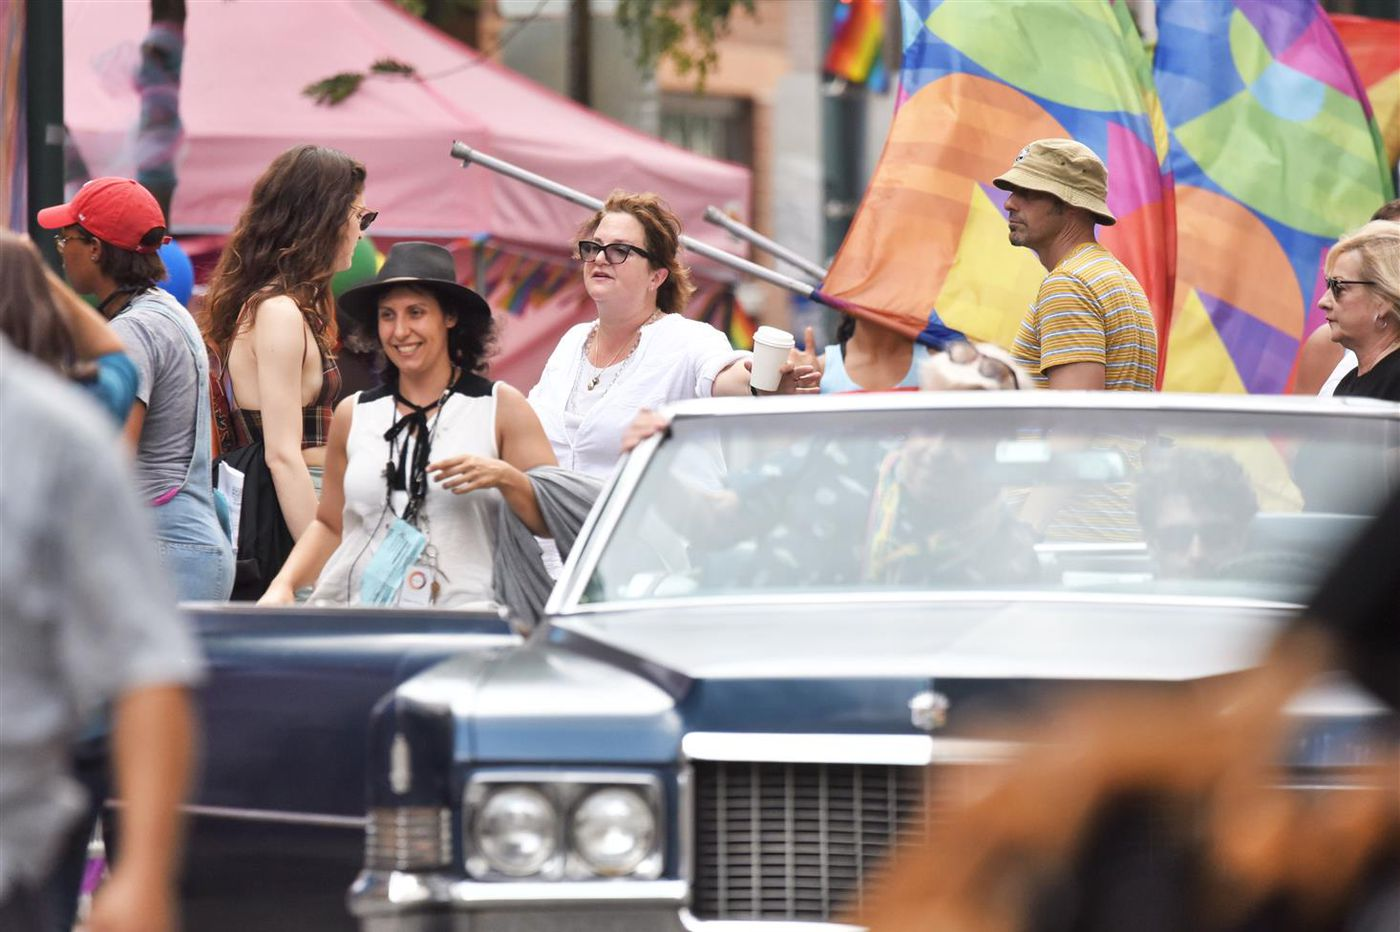 New set photos from 'Dispatches from Elsewhere' feature Sally Field, a recreation of the Philly Pride parade